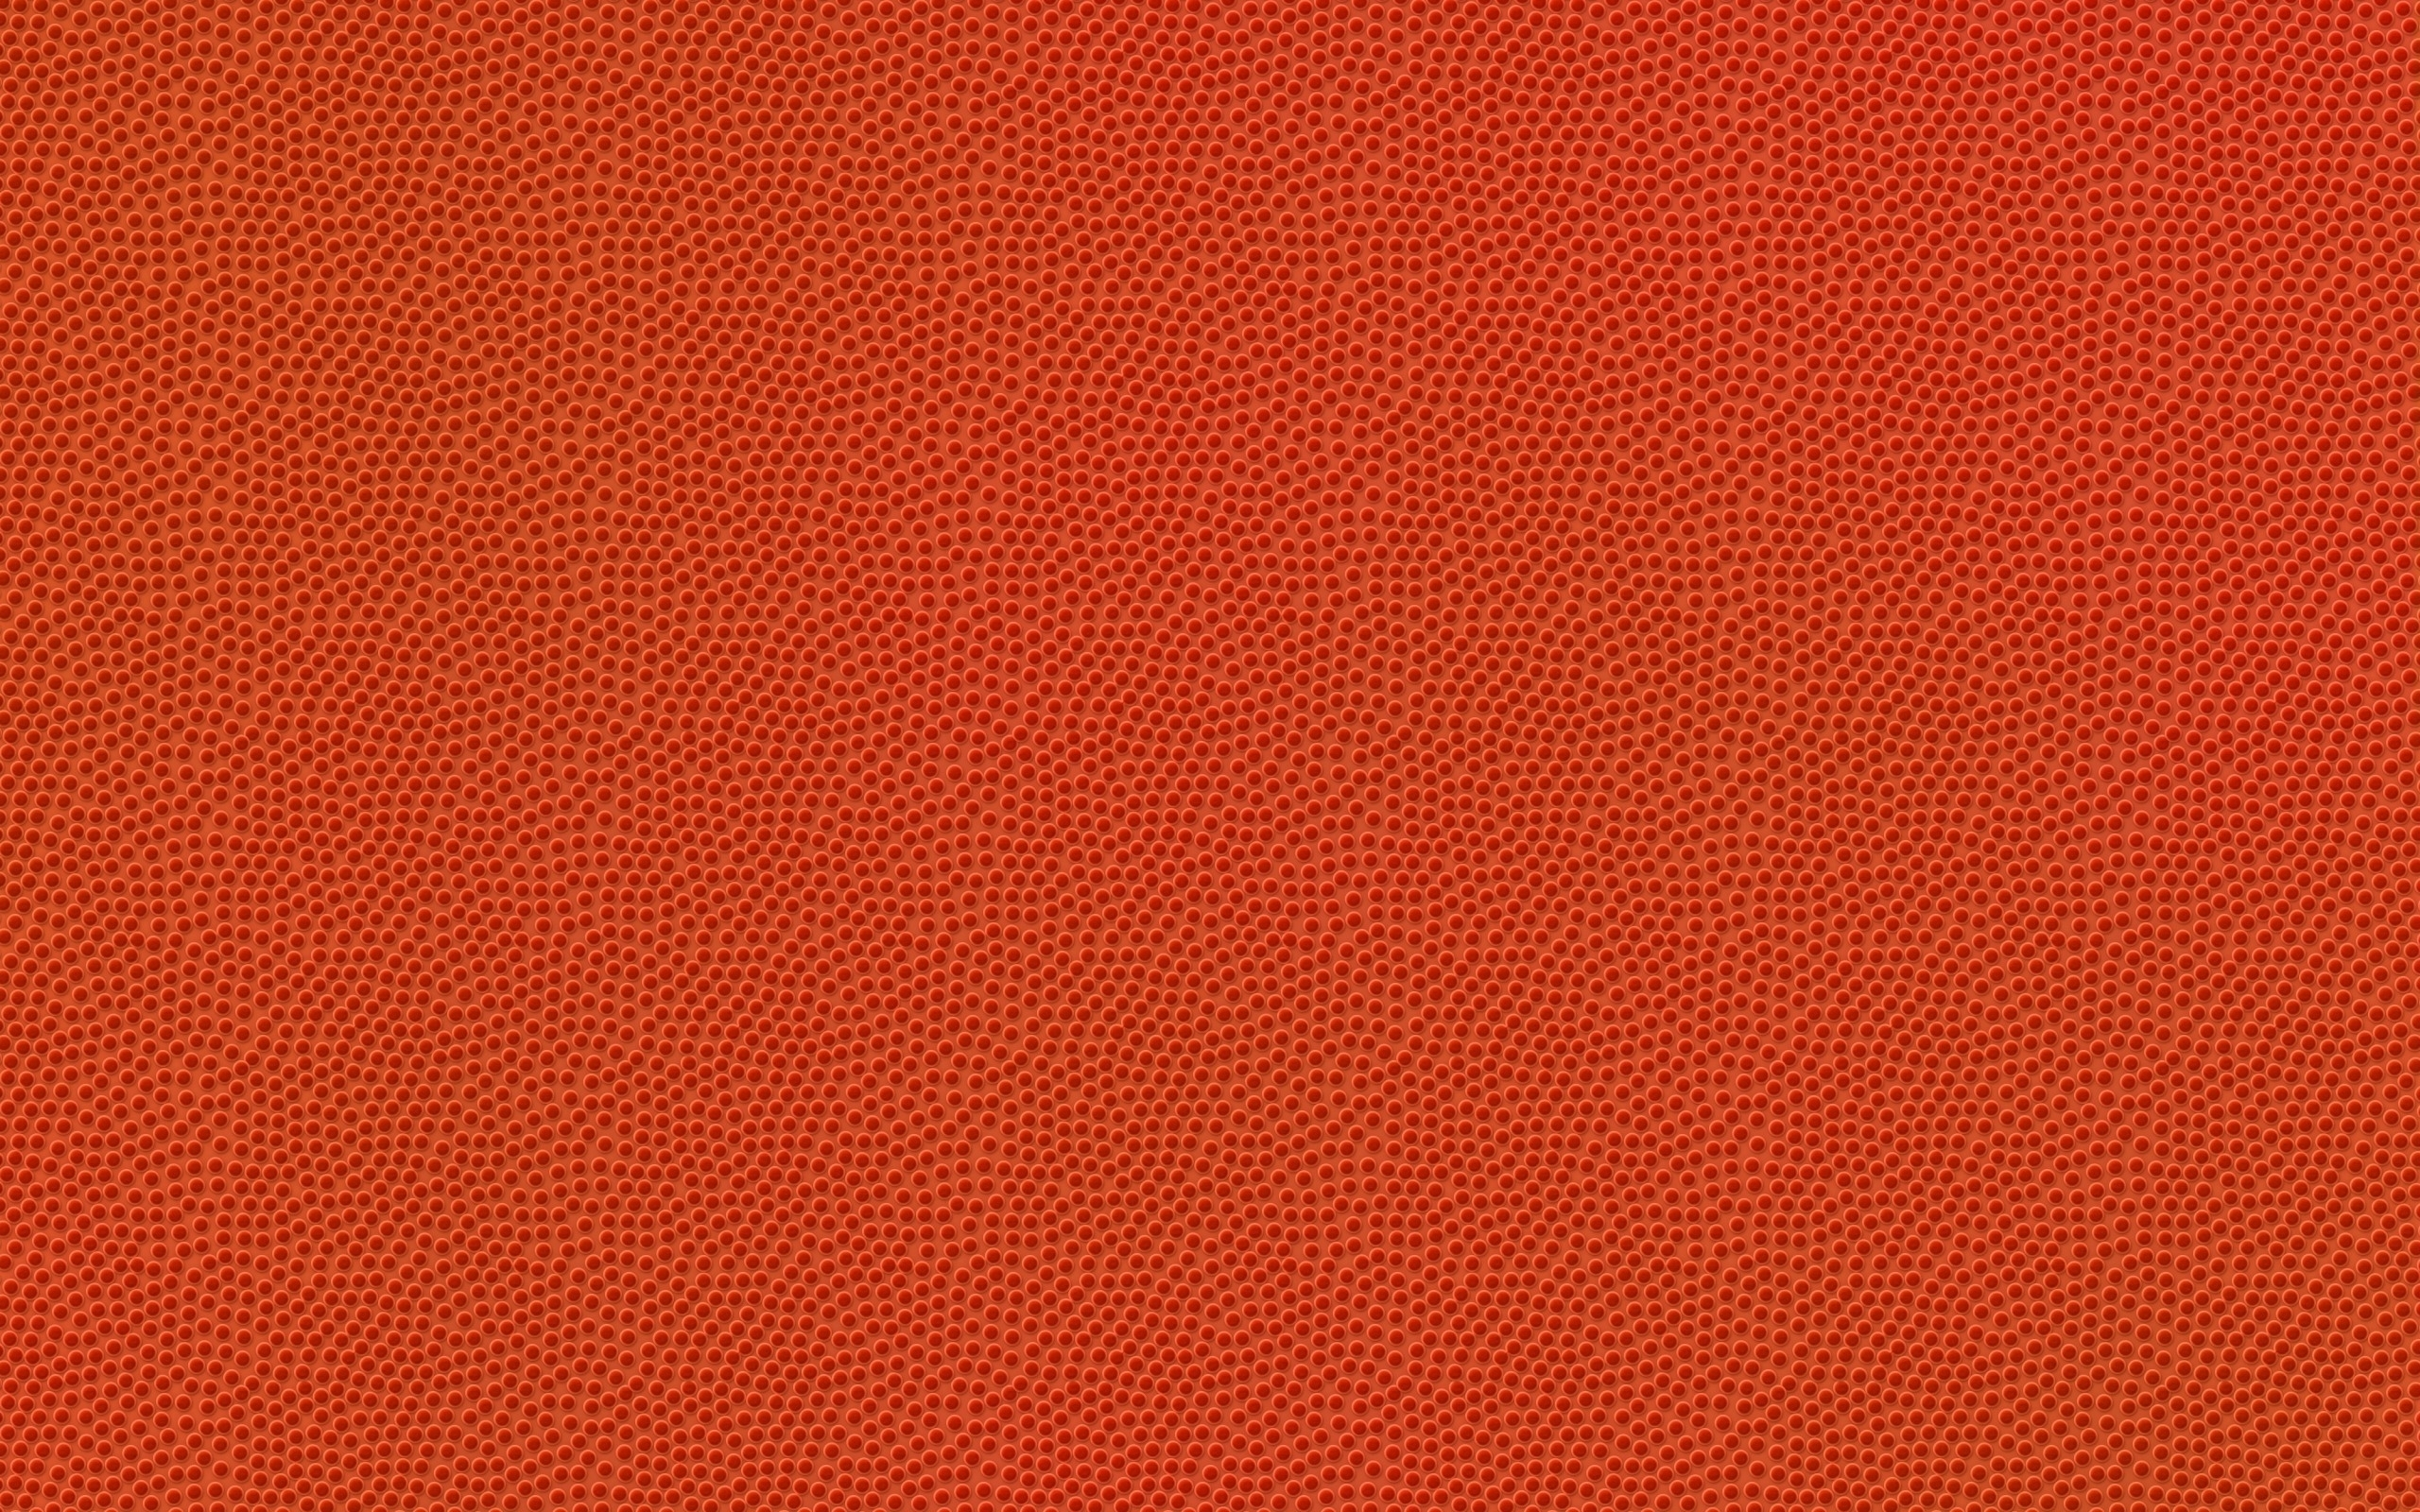 Rubber Texture Background Texture Rubber Download Photo